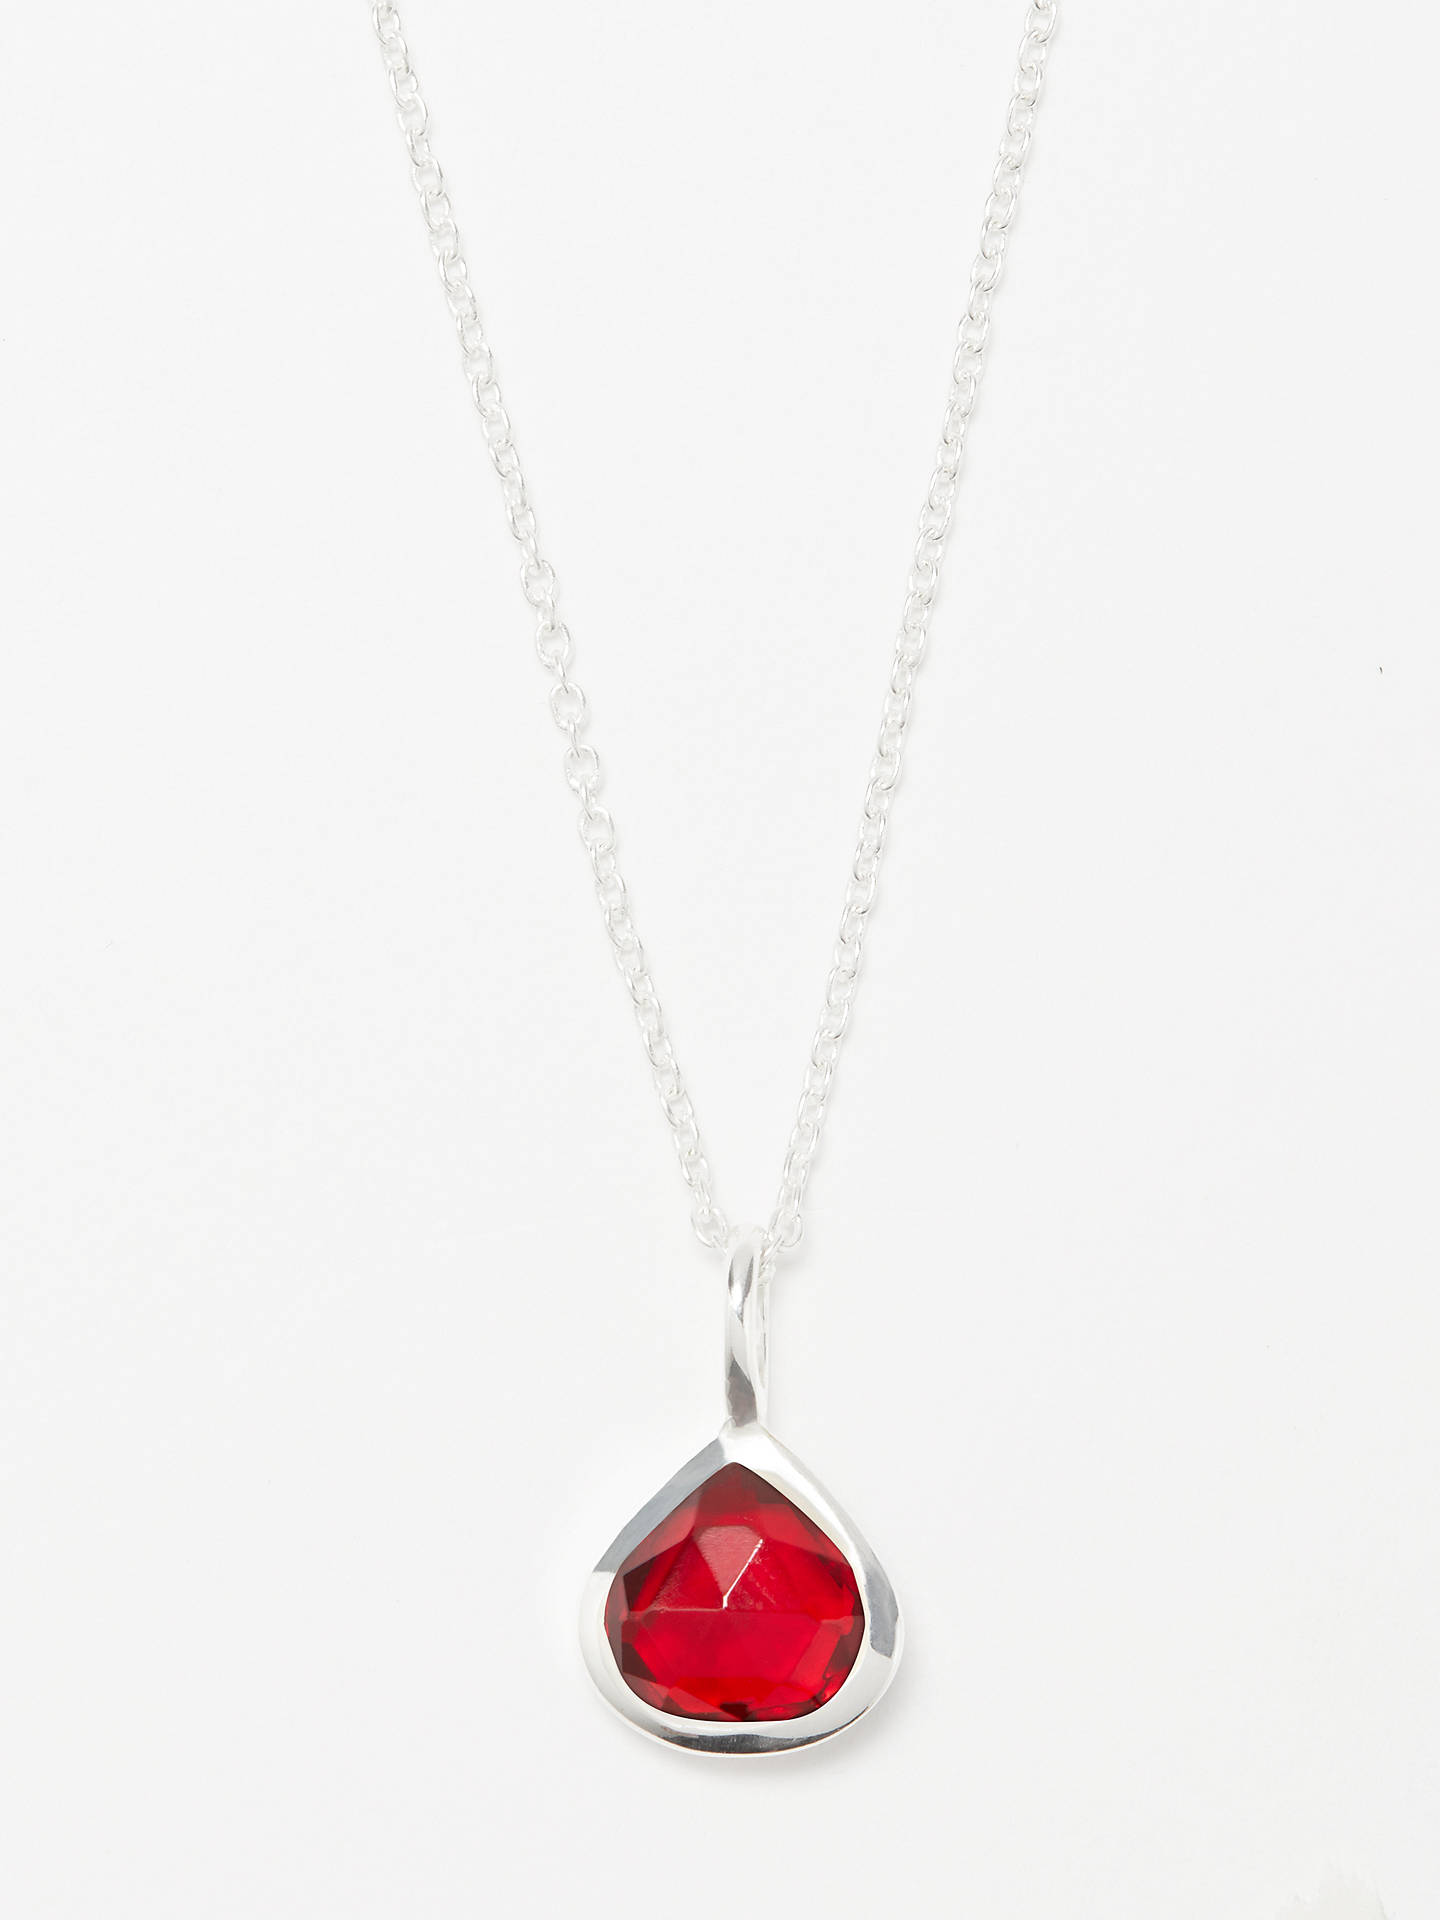 BuyJohn Lewis & Partners Semi-Precious Stone Birthstone Pendant Necklace, January Pink Garnet Online at johnlewis.com